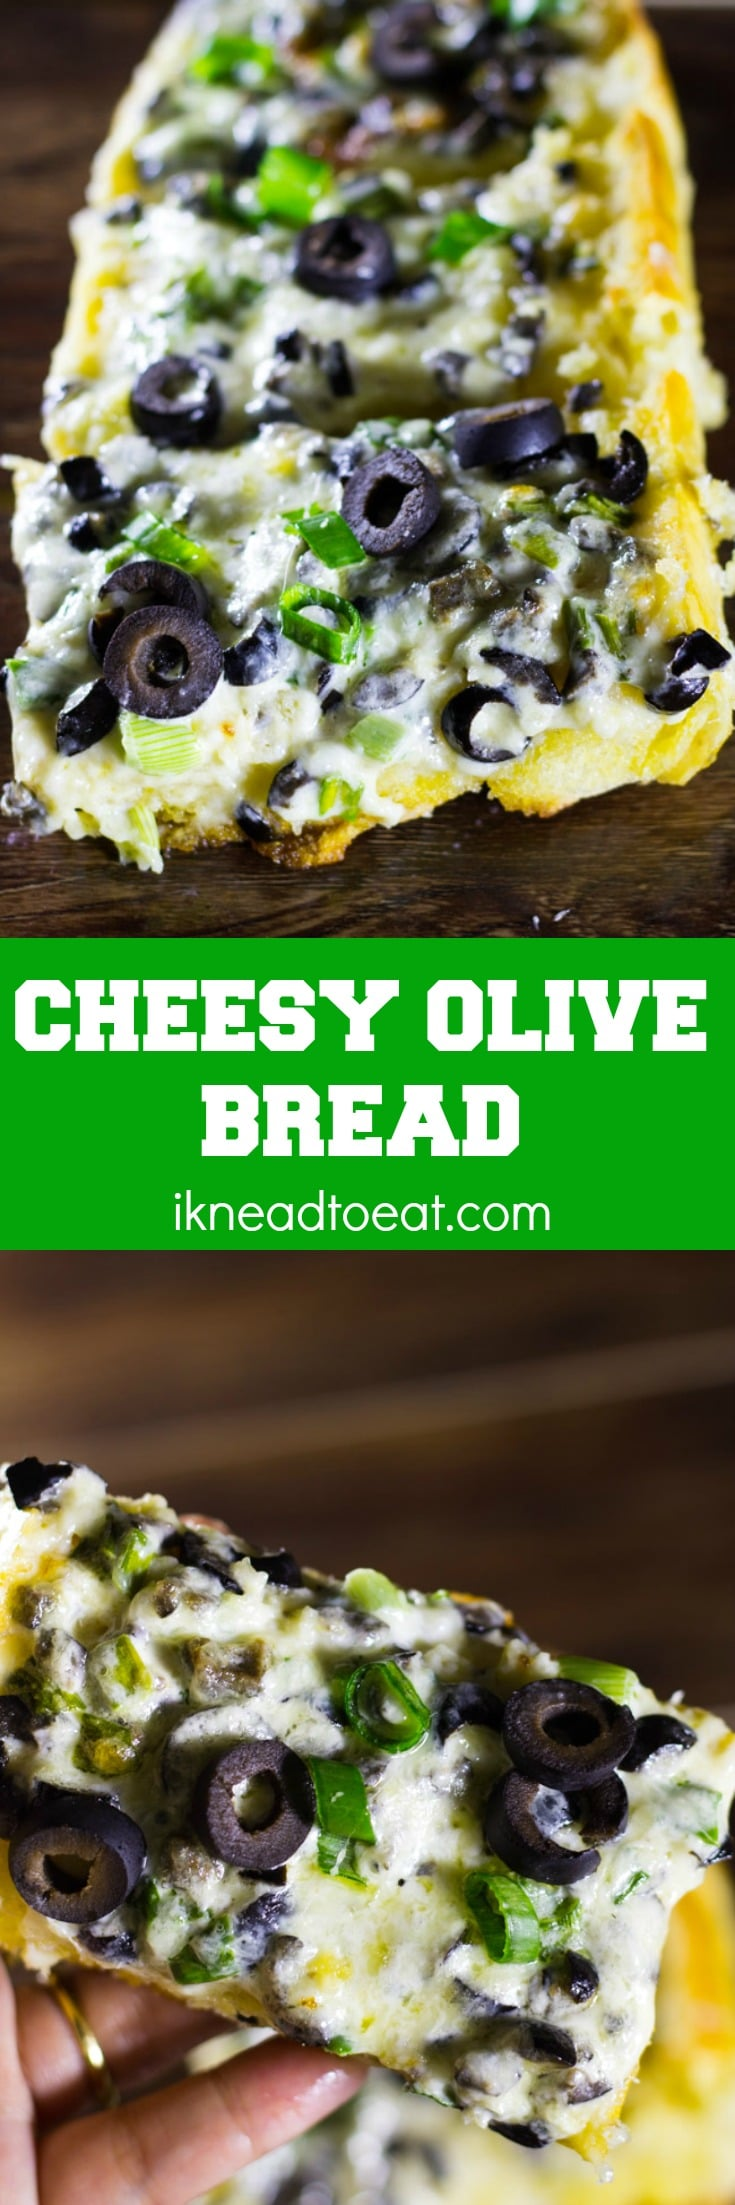 Cheesy Olive Bread